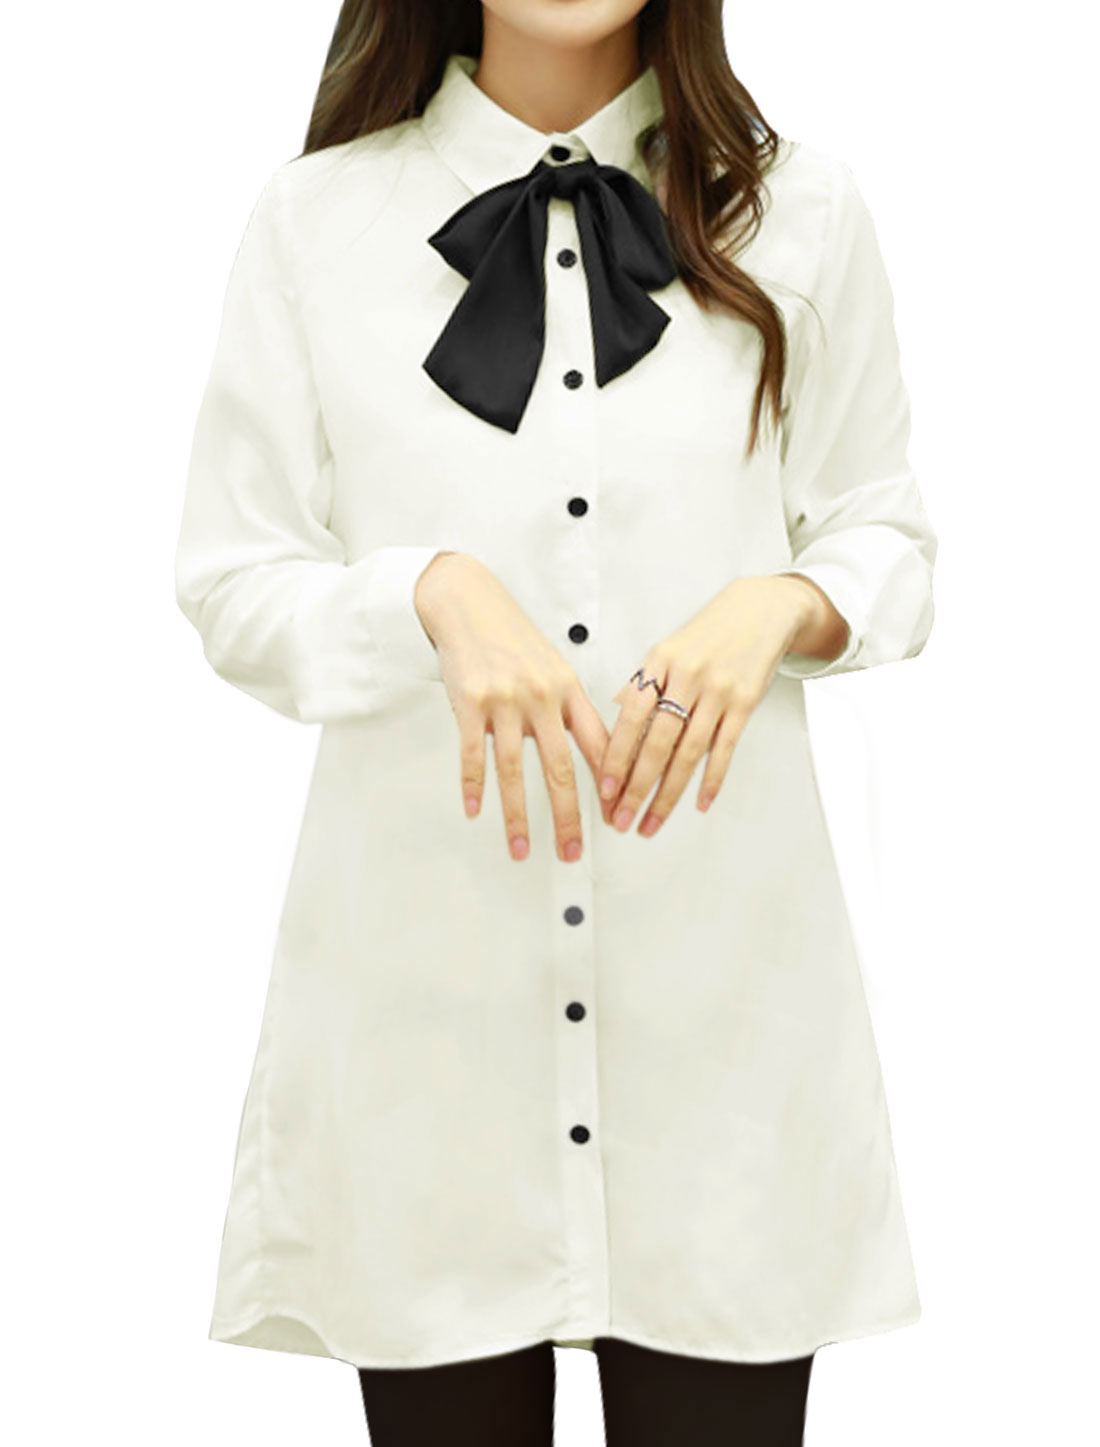 Women Point Collar Semi Sheer High Low Tunic Shirt w Bow Tie White M